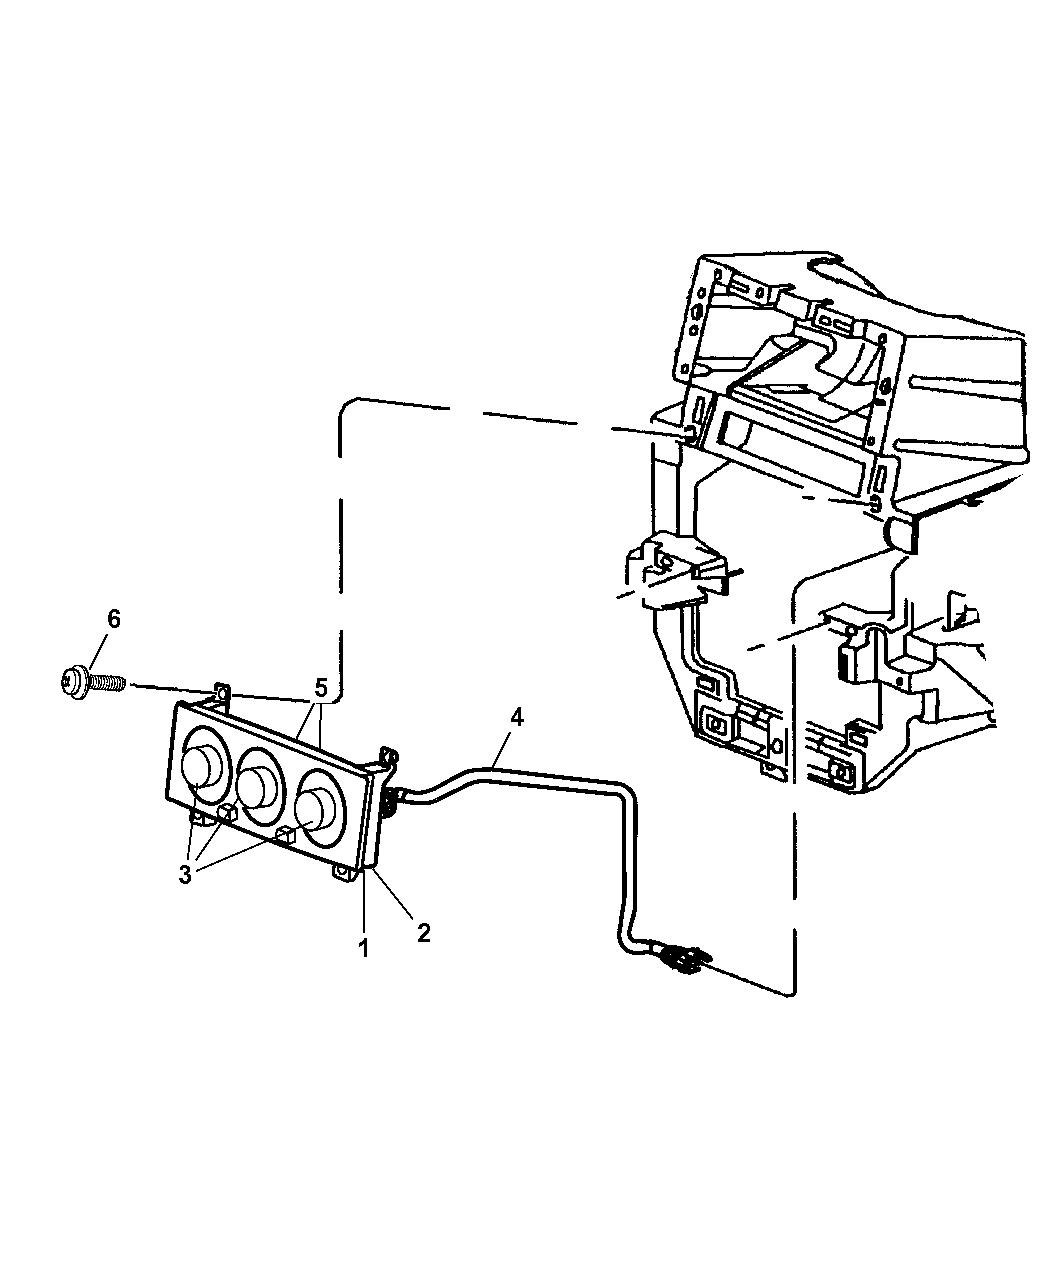 5013124aa - genuine jeep bulb-heater and a/c control 2001 jeep heater control diagram 2010 jeep heater wiring diagram #6